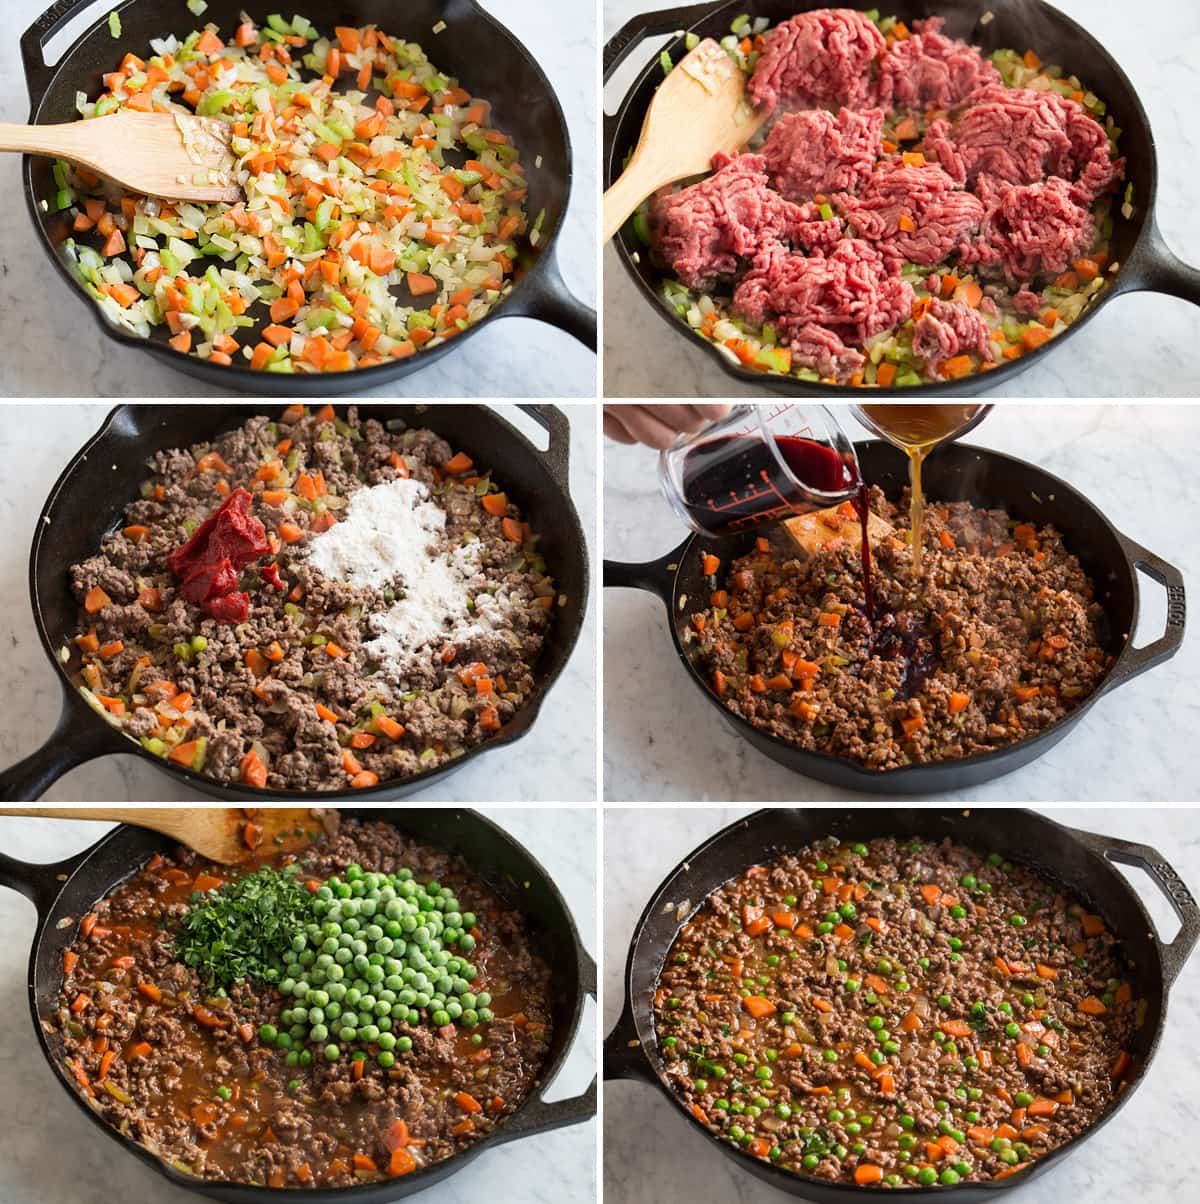 Image showing steps of making ground beef filling for shepherd's pie.